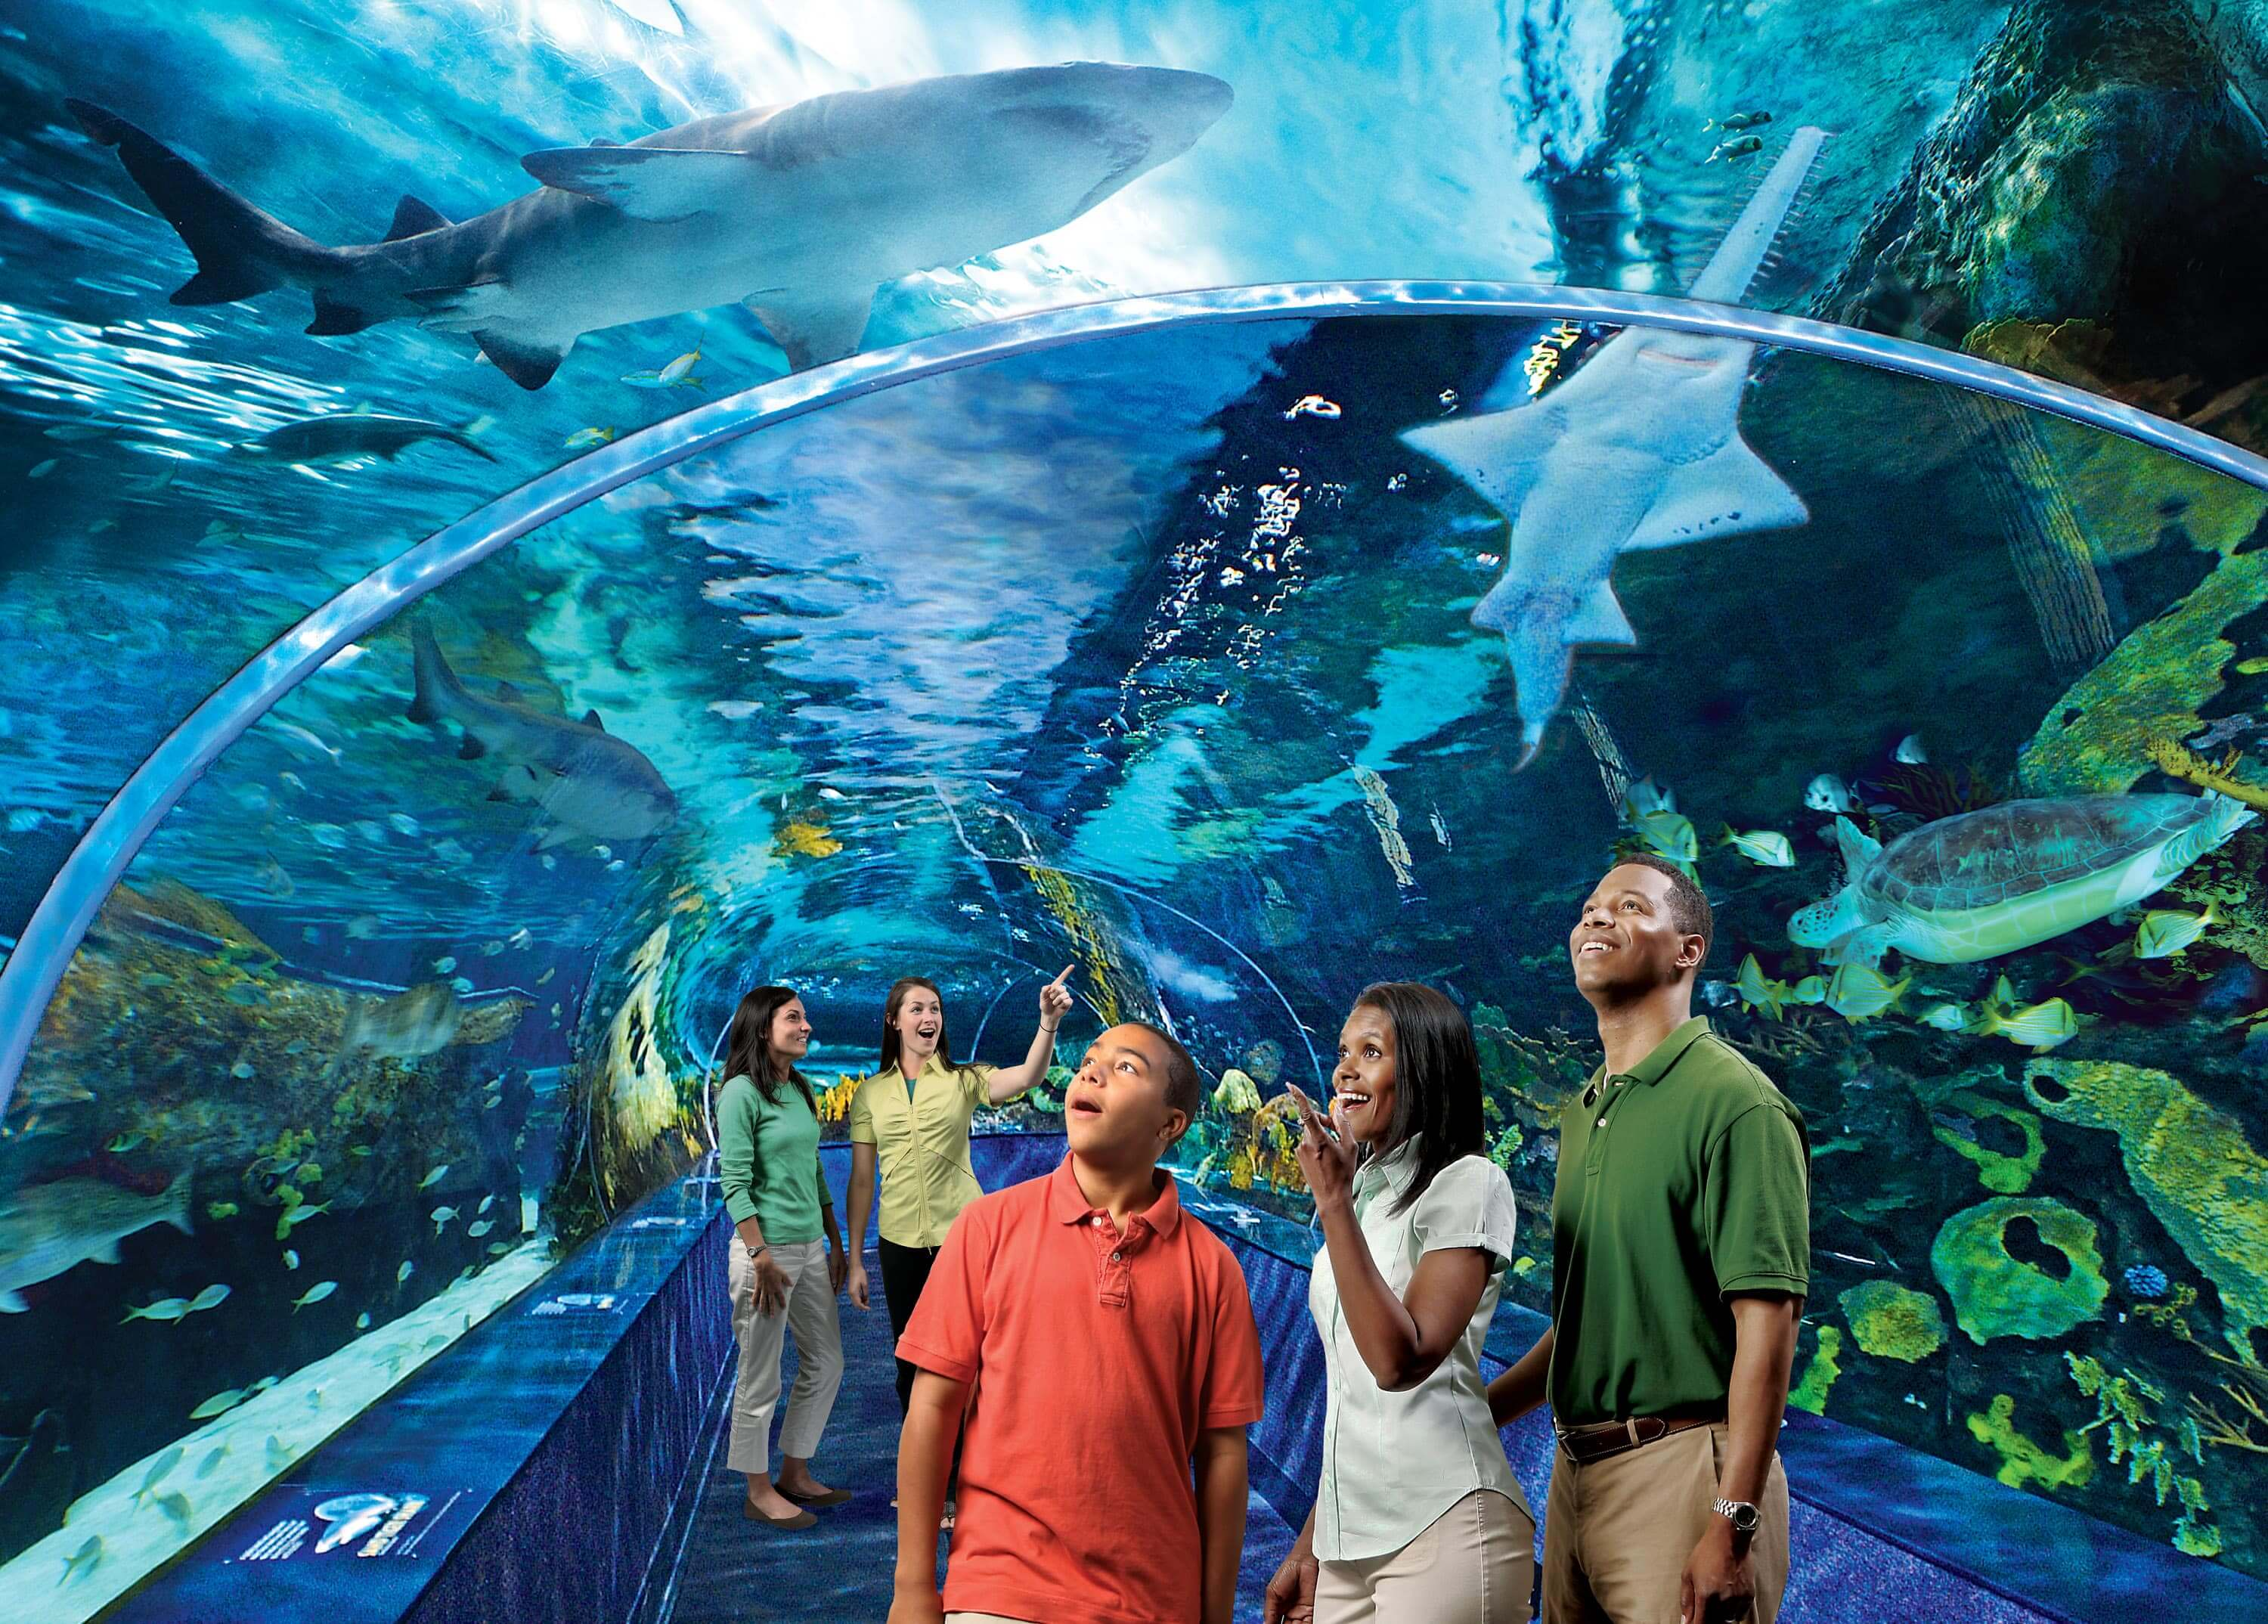 Plan your Georgia Aquarium. Look at our latest promotional offers, and helpful information to enhance your experience.